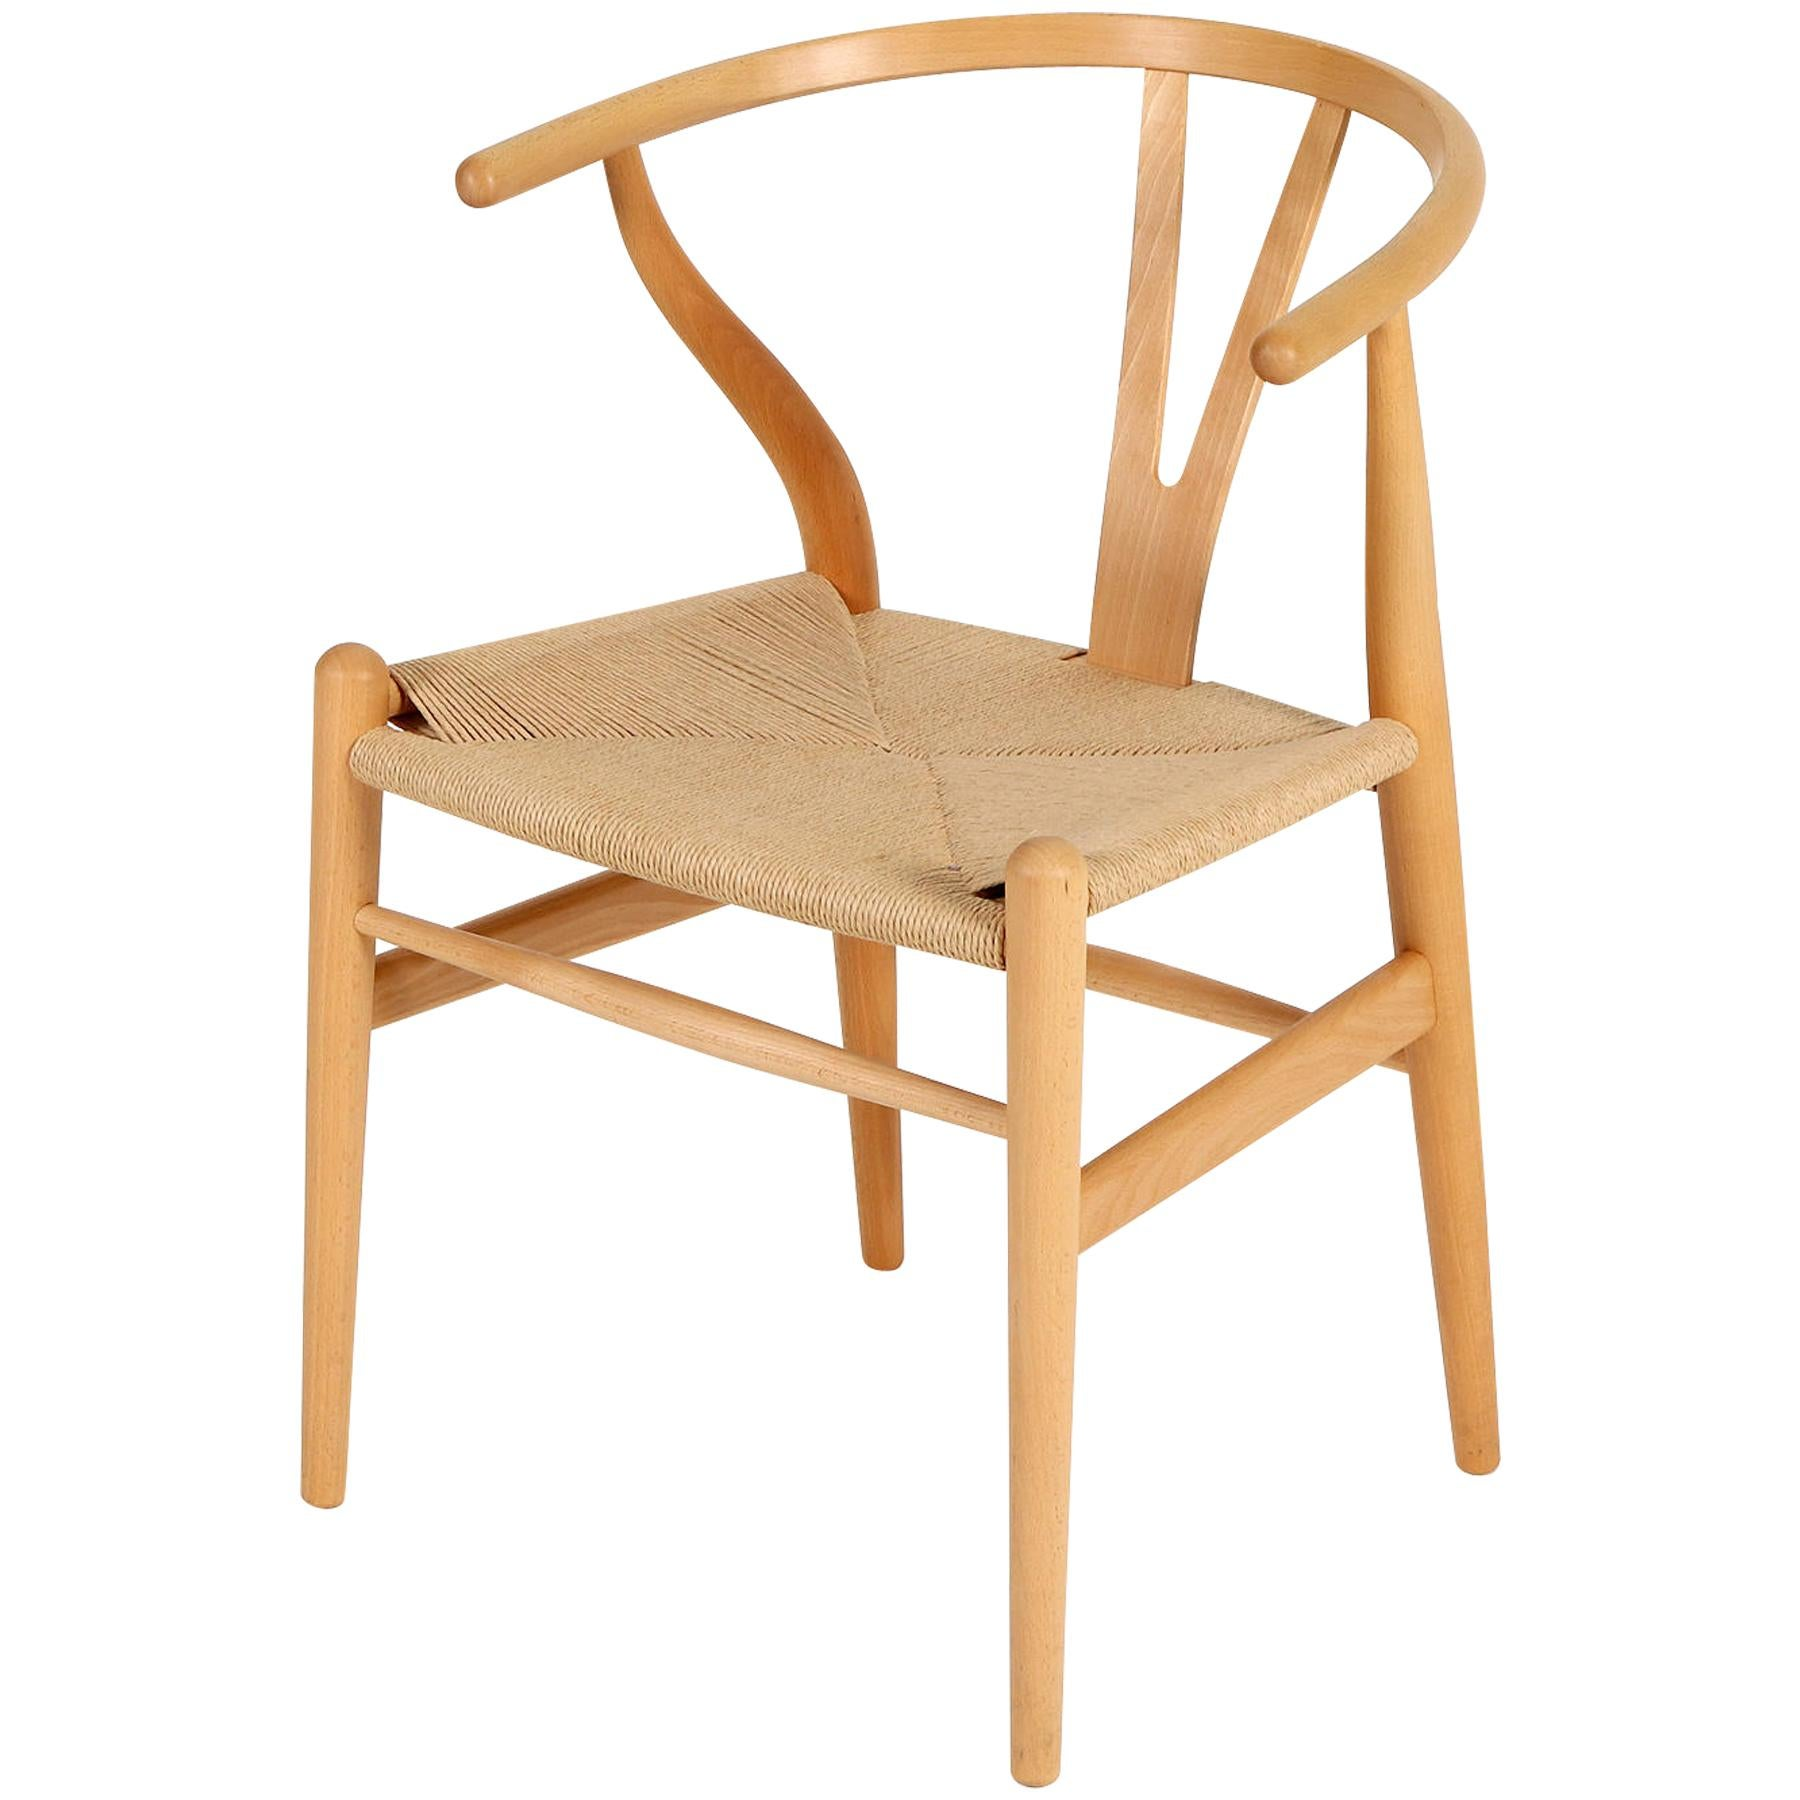 Dining Y Chairs By Hans Wegner Ch 24 For Sale At 1stdibs - Y Chair